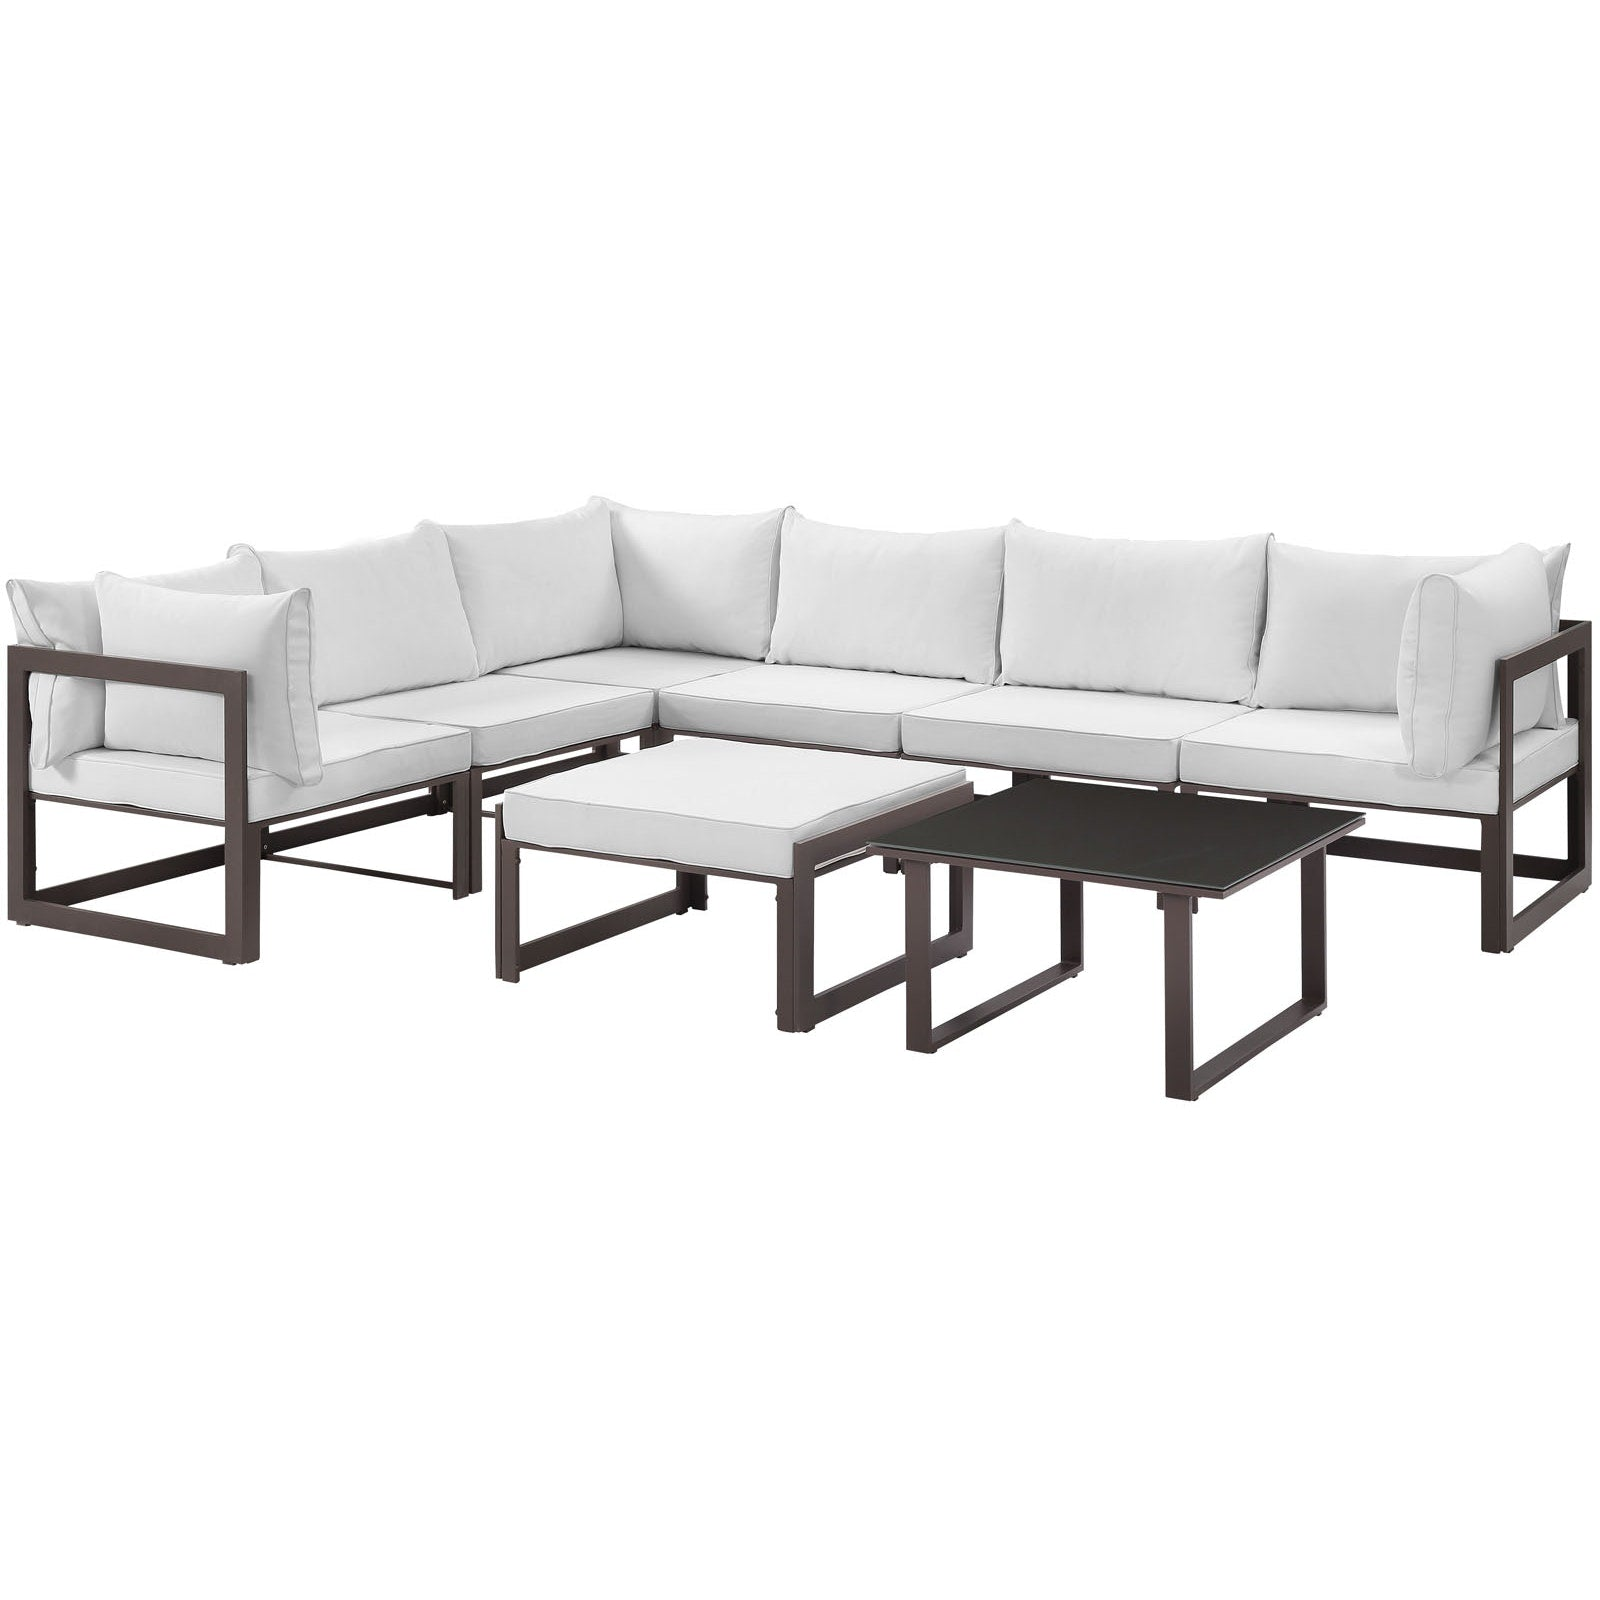 Fortuna 8 Piece Outdoor Patio Sectional Sofa Set - Brown White